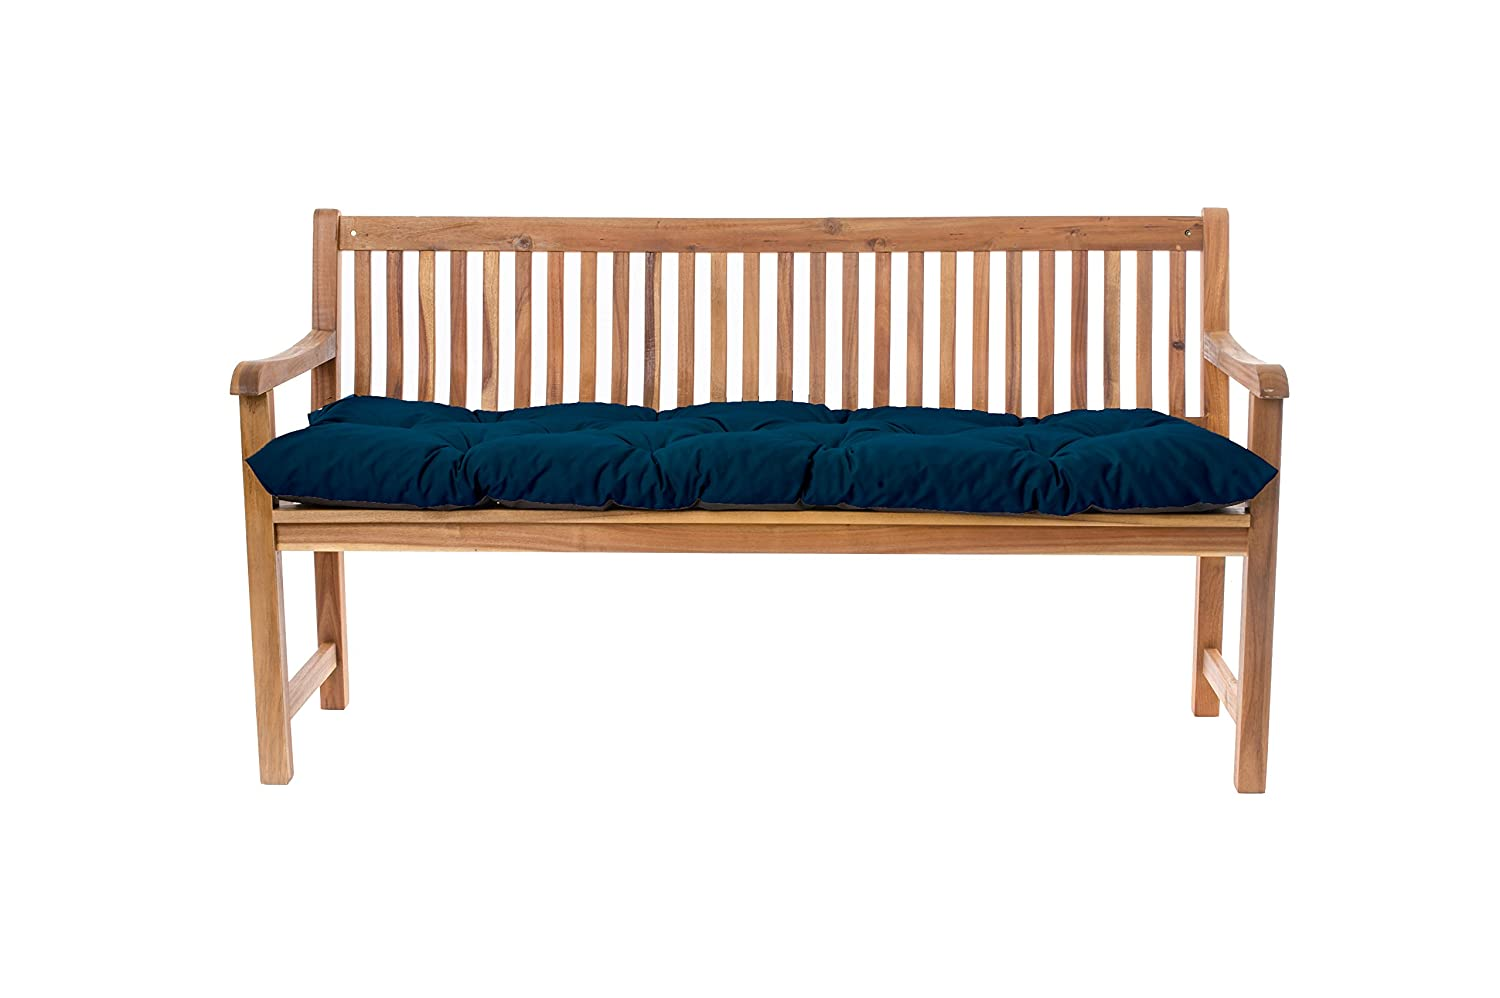 Gardenista Outdoor Garden 2 Seater Bench Cushion 110x45x7cm in Water Resistant Fabric (Moroccan Blue). Made in the UK. Tufted Cushions Collection